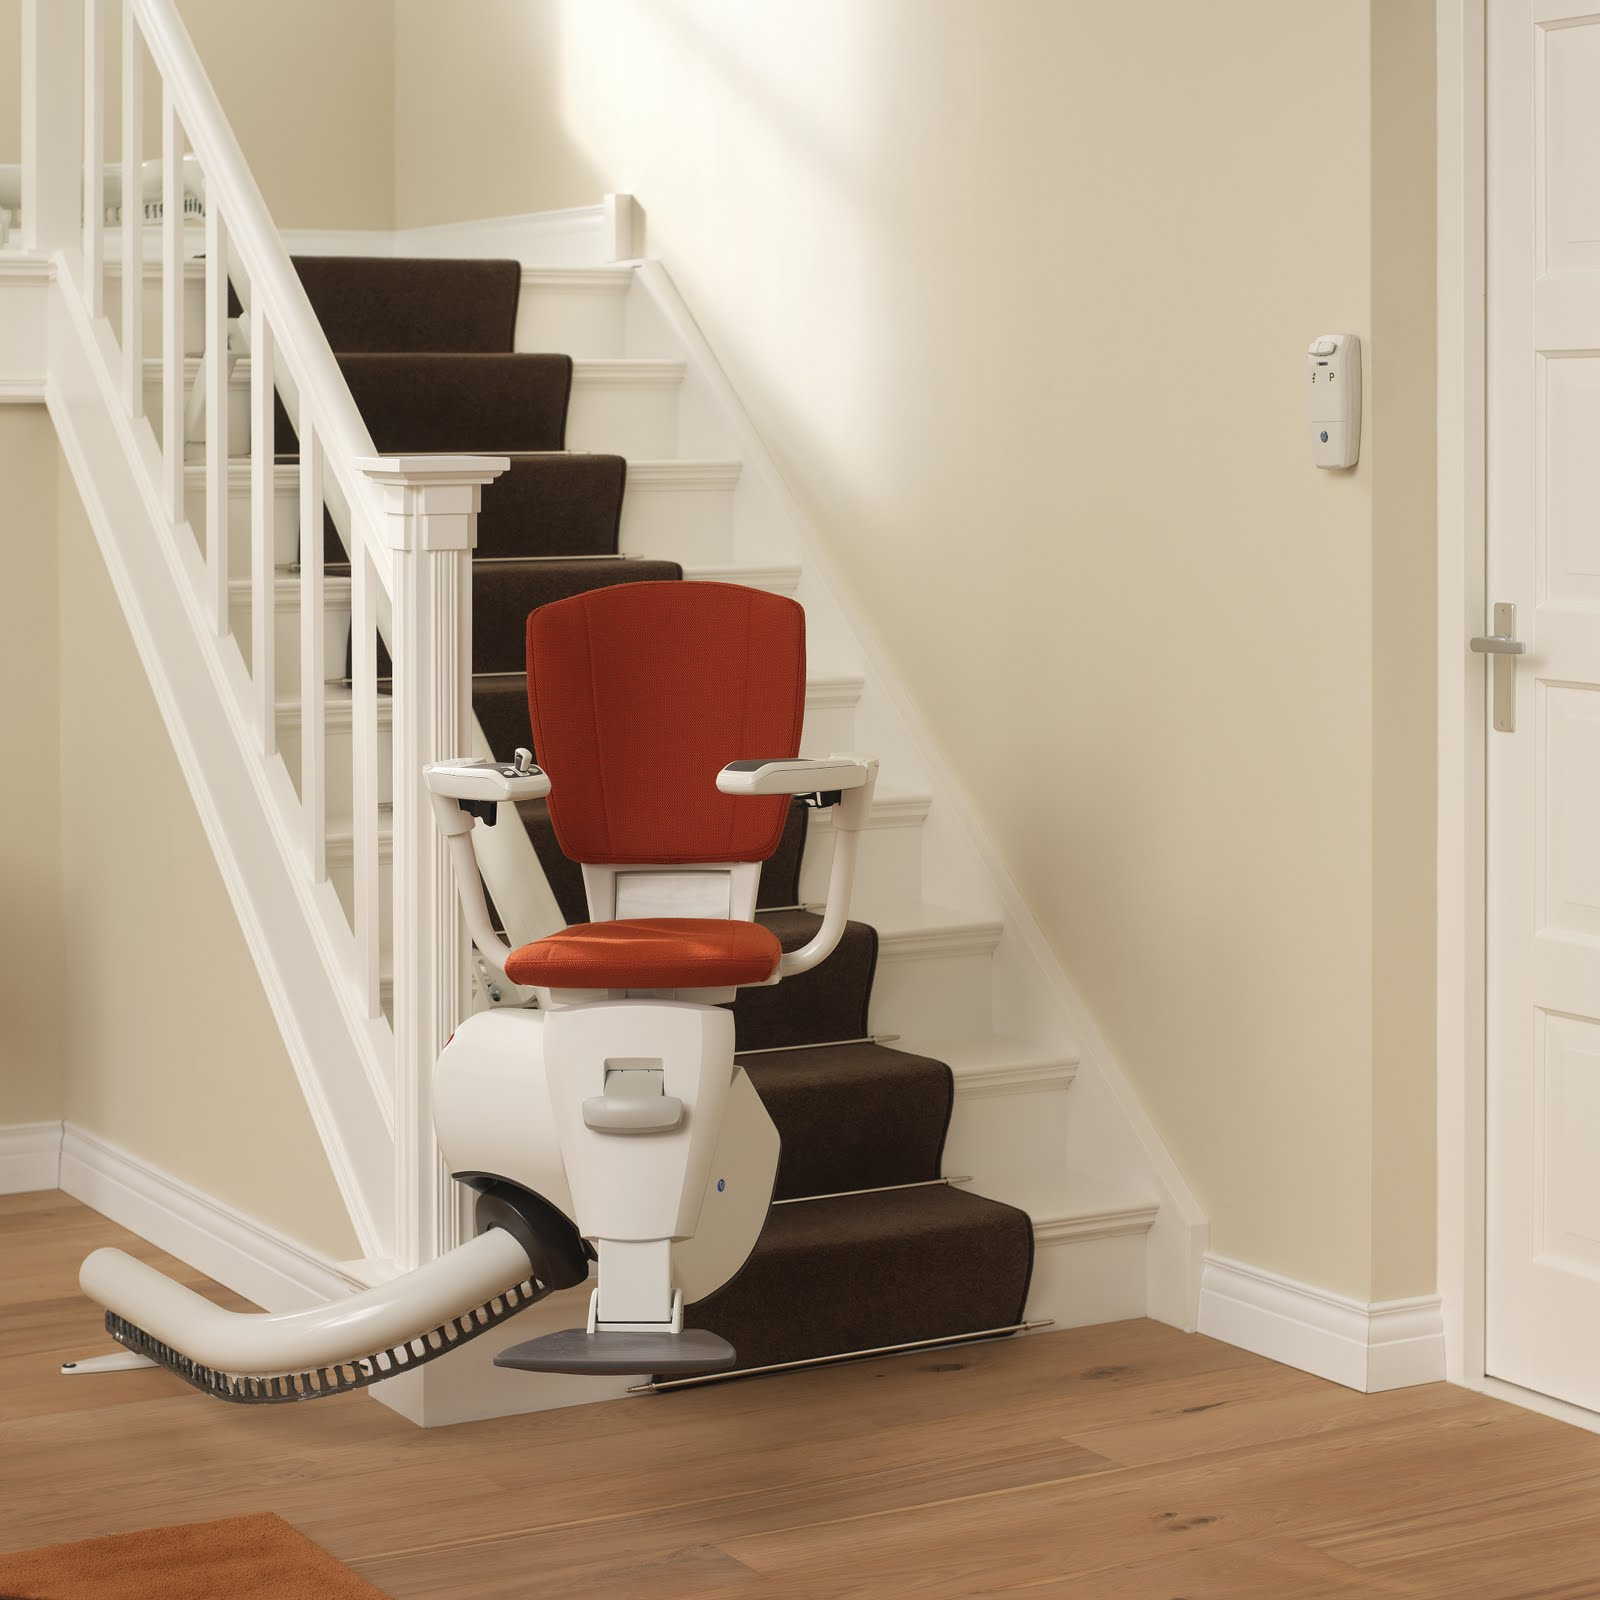 Flow 2 stairlift for curved and narrow staircases.